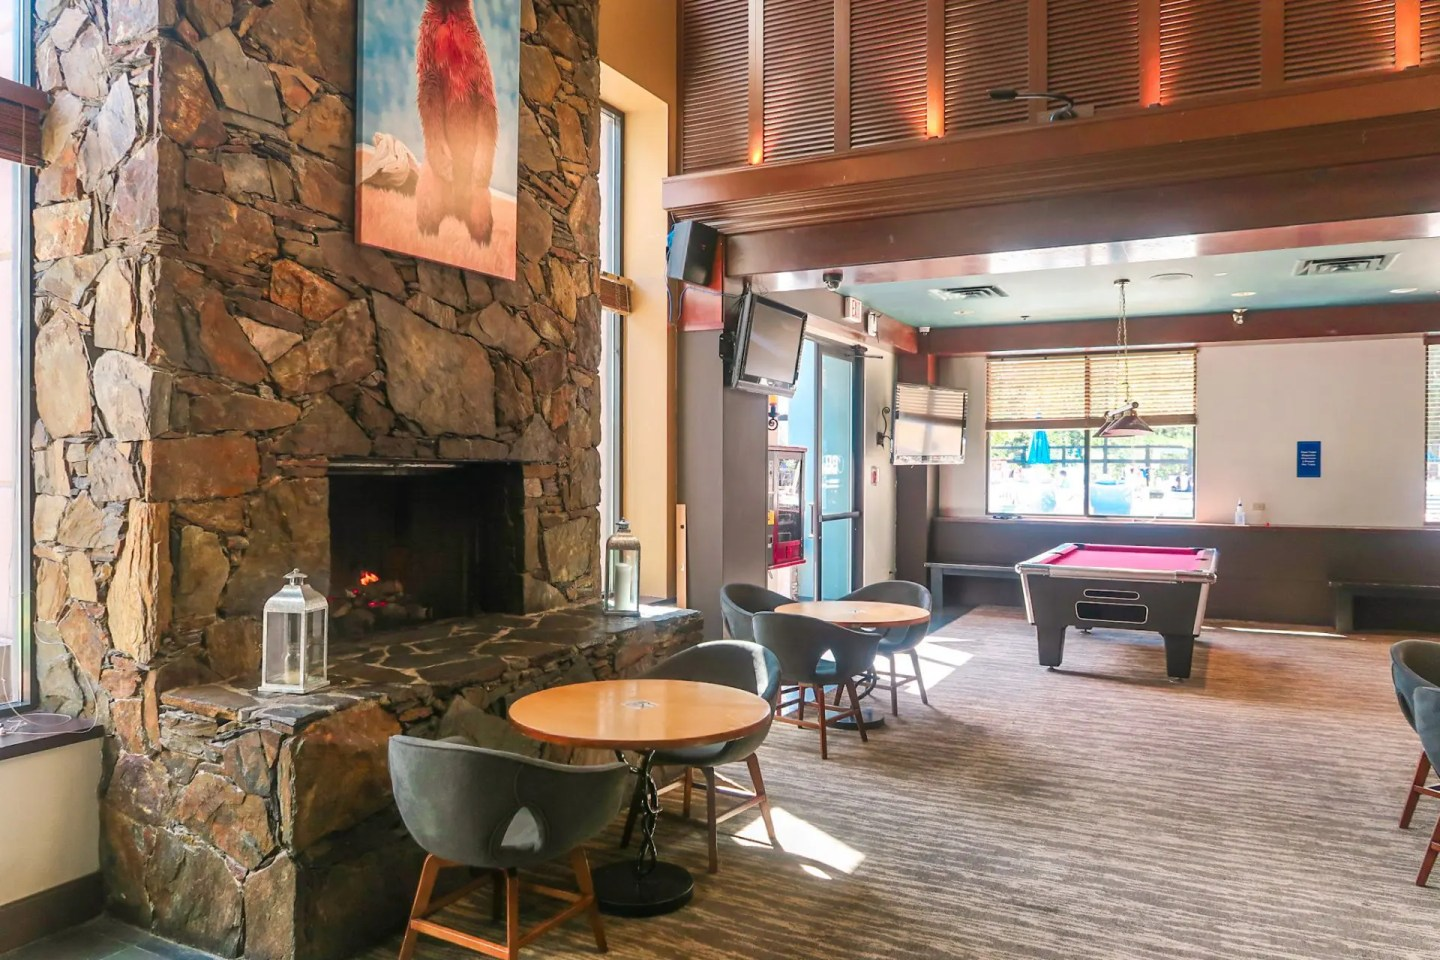 Places to visit in Whistler